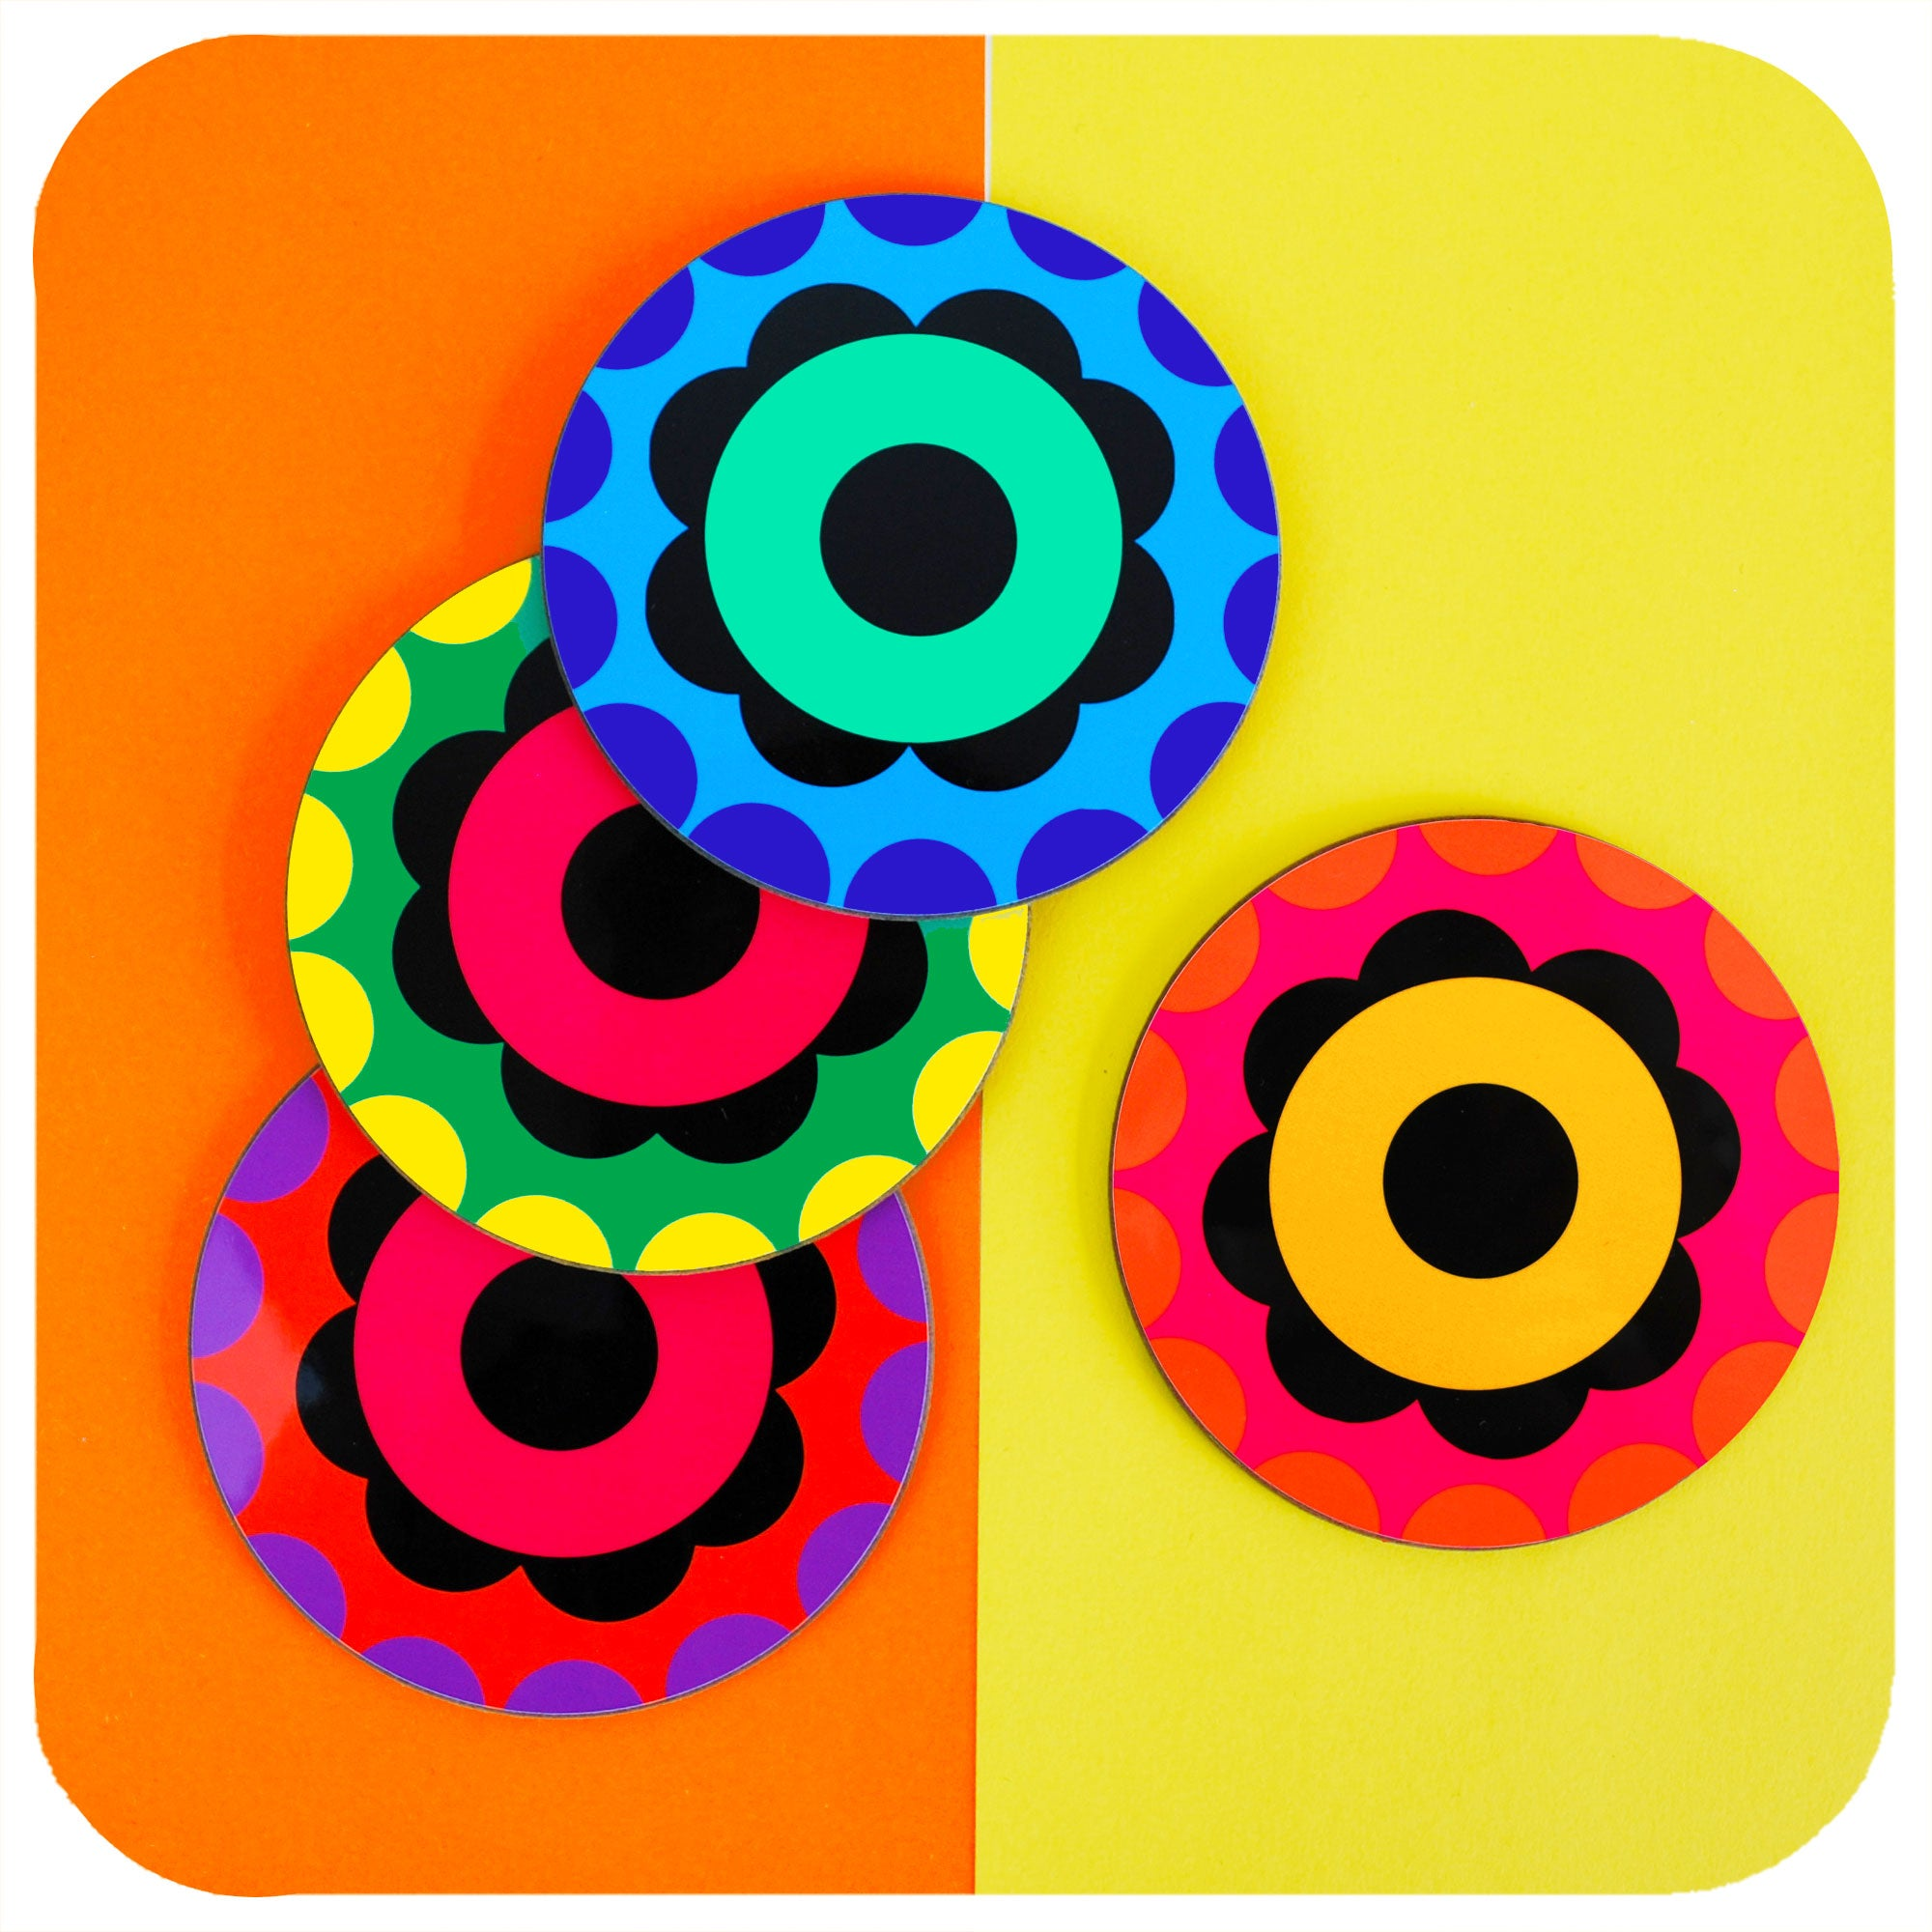 Set of 4 Colourful 60s Flower Power style coasters scattered on a colourblock background | The Inkabilly Emporium